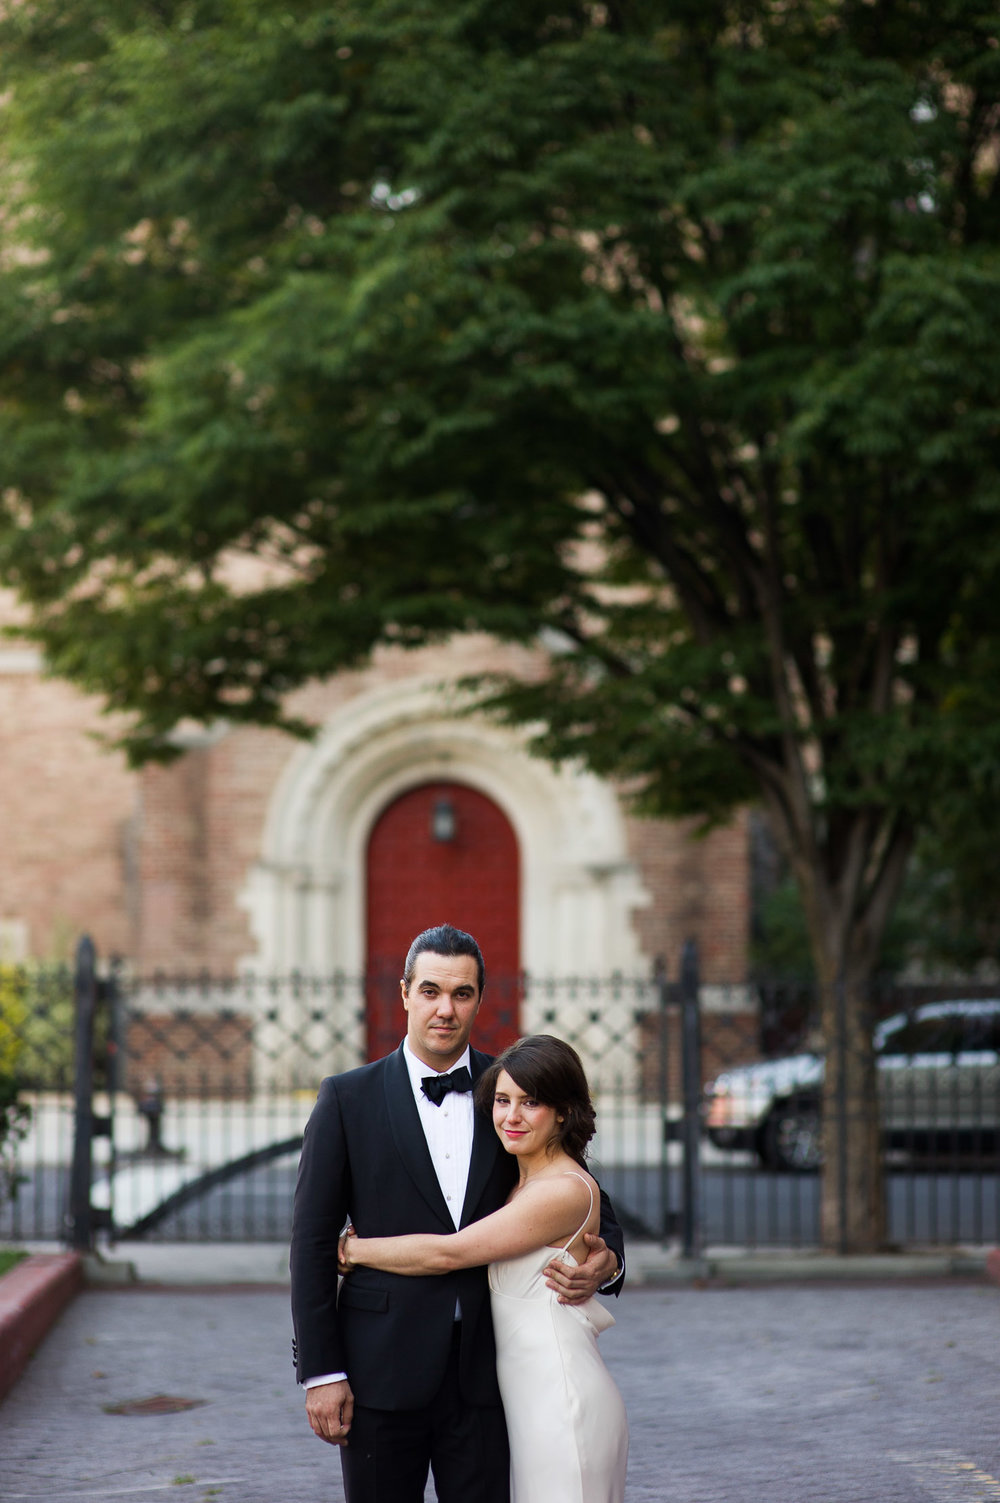 Ici-Brooklyn-Wedding-1023.jpg